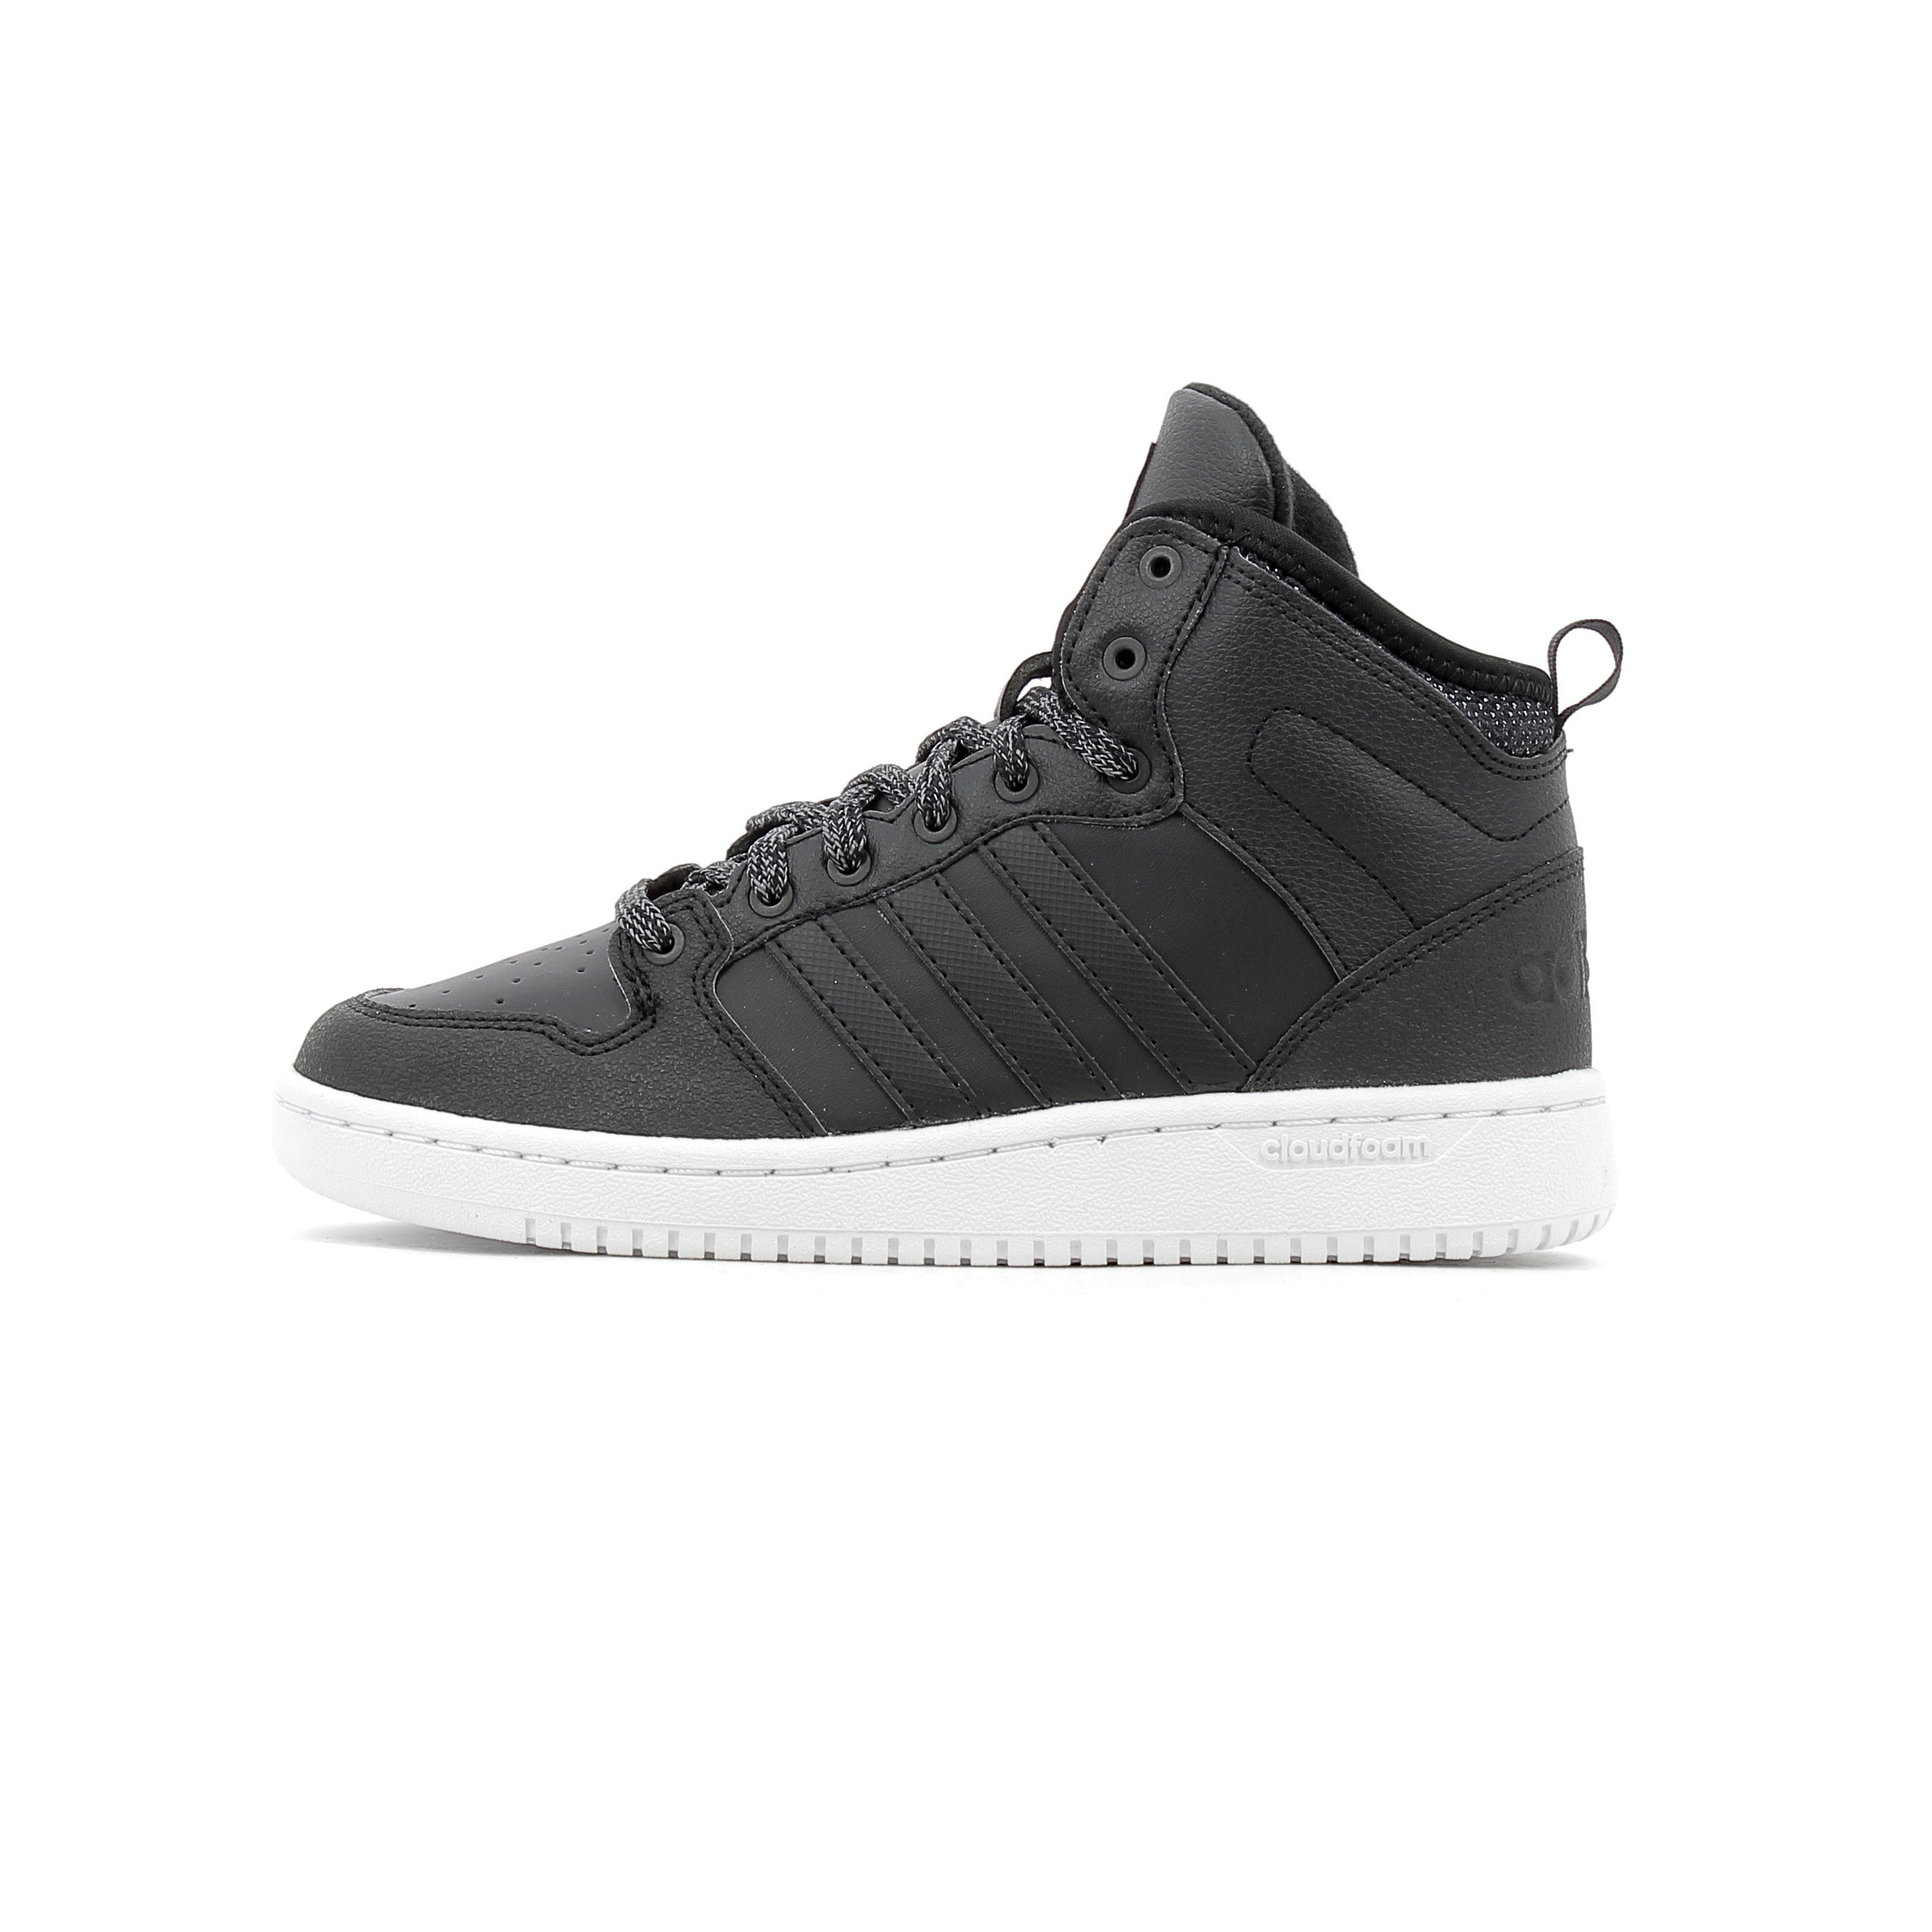 Baskets montantes Adidas Performance Cloudfoam Hoops Mid Winter Femme